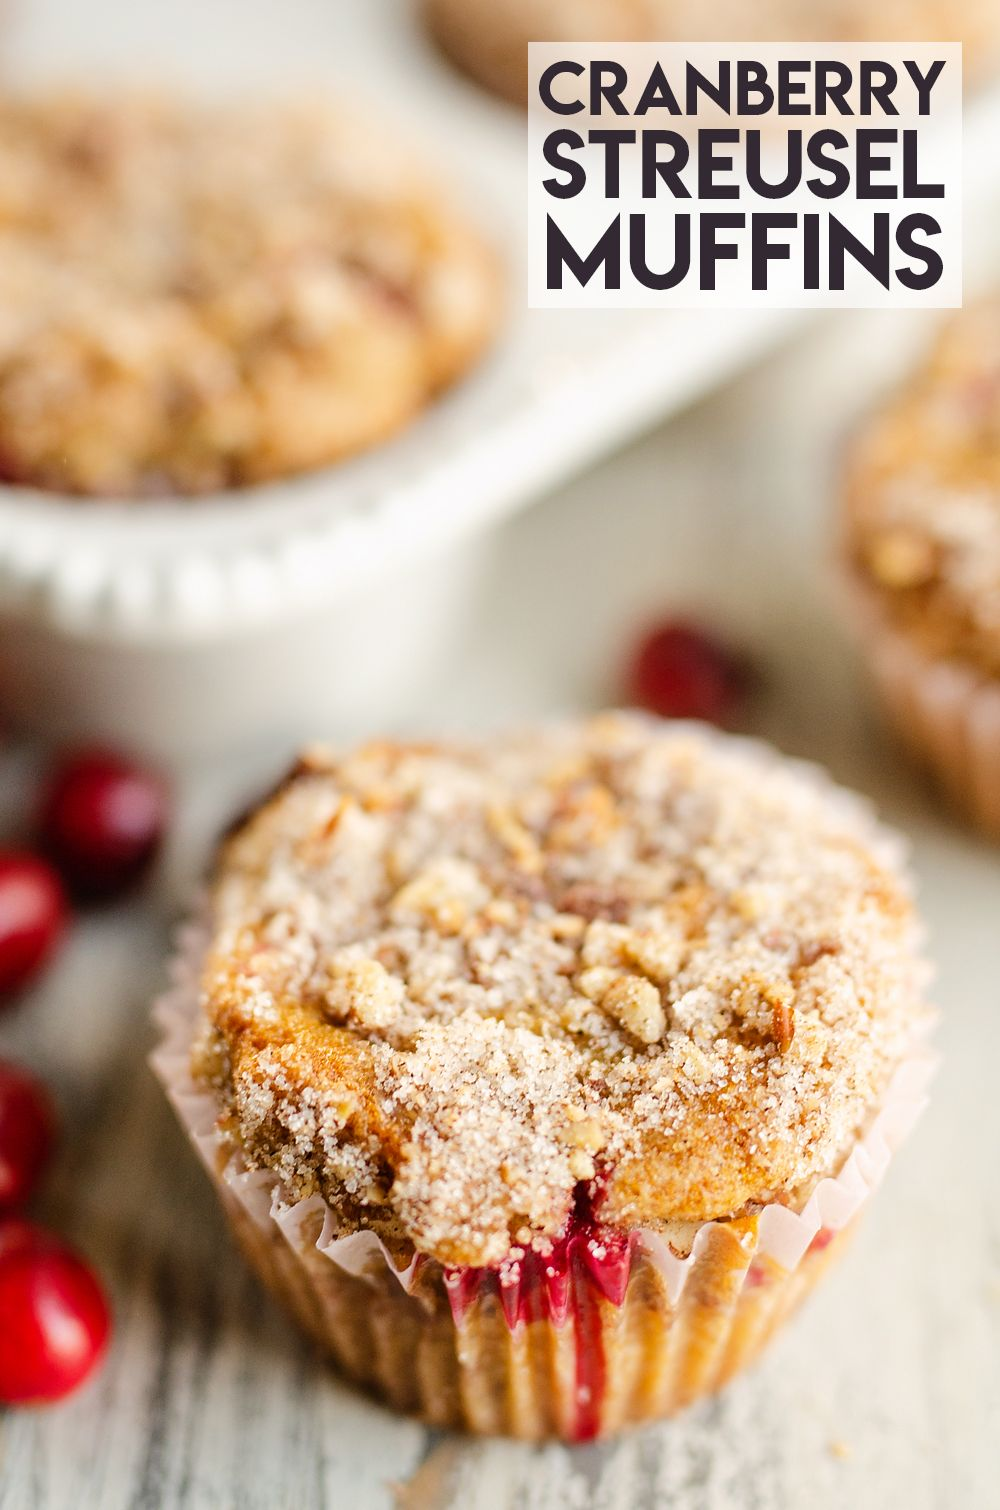 Cranberry Streusel Muffins Are Wonderful Breakfast Recipe With The Perfect Balance Of Flavors With Tartness Fr In 2020 Muffin Streusel Streusel Fresh Cranberry Recipes